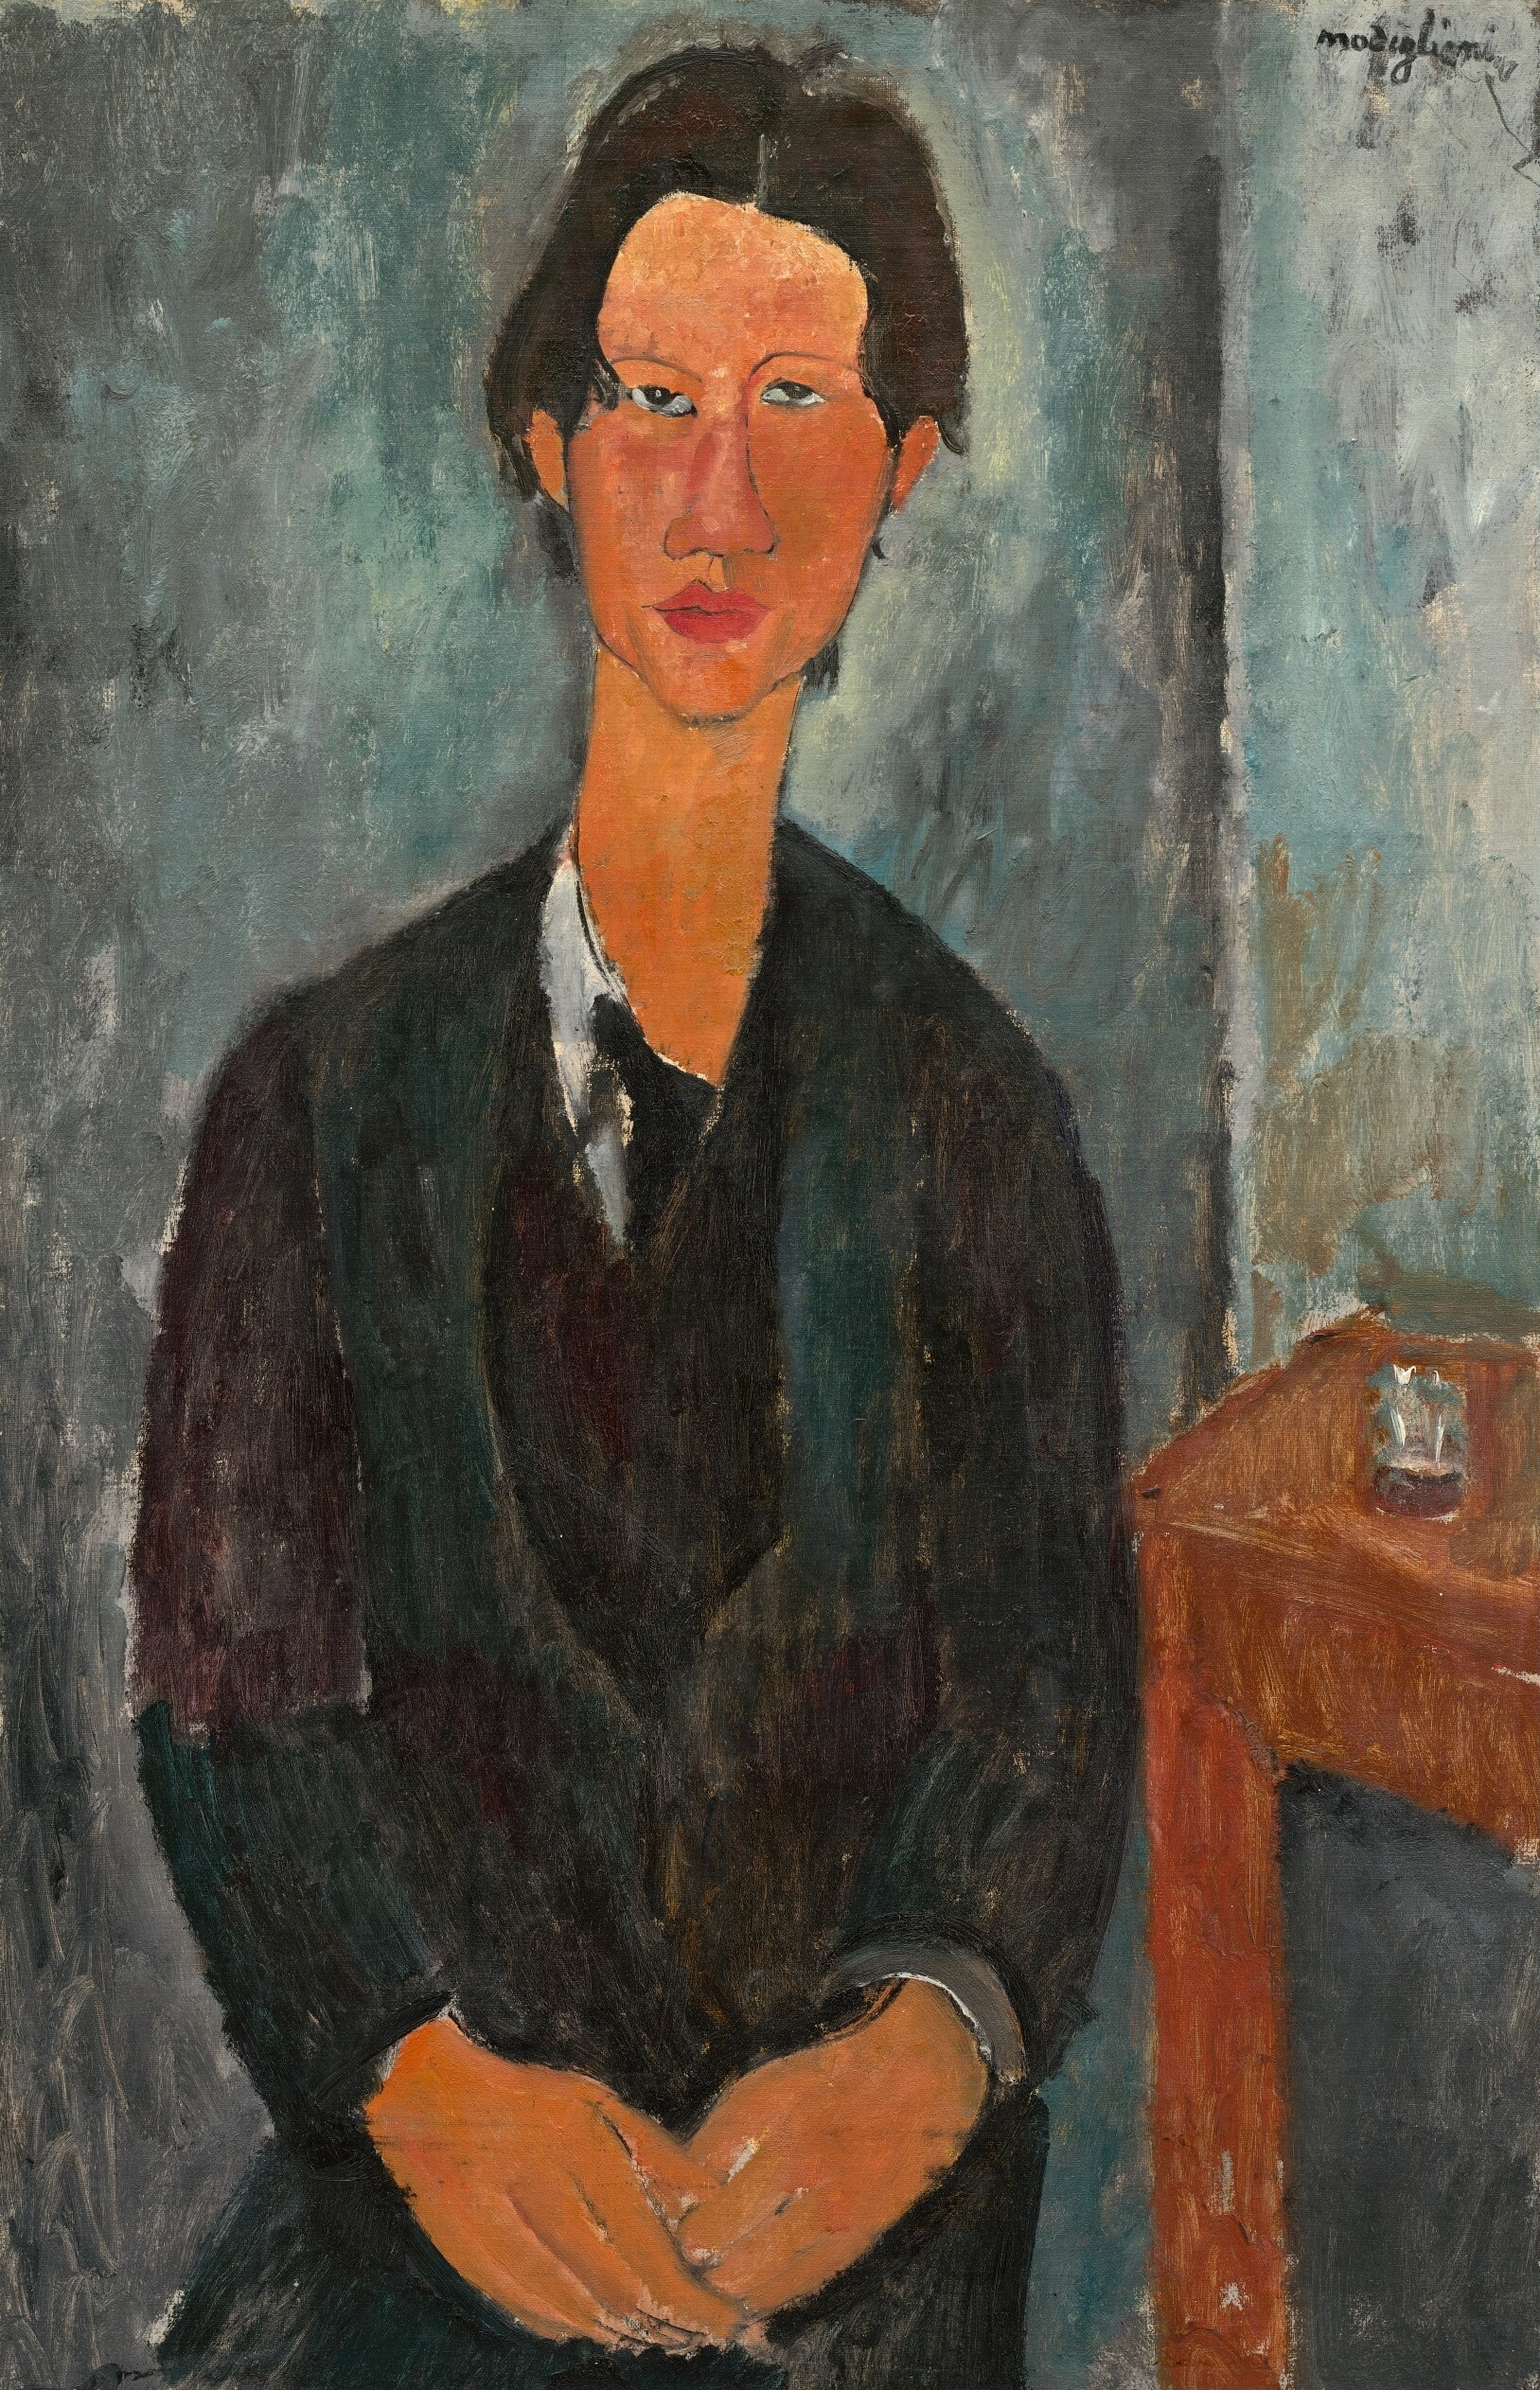 Amedeo Modigliani, Chaim Soutine, Italian, 1884 - 1920, 1917, oil on canvas, Chester Dale Collection